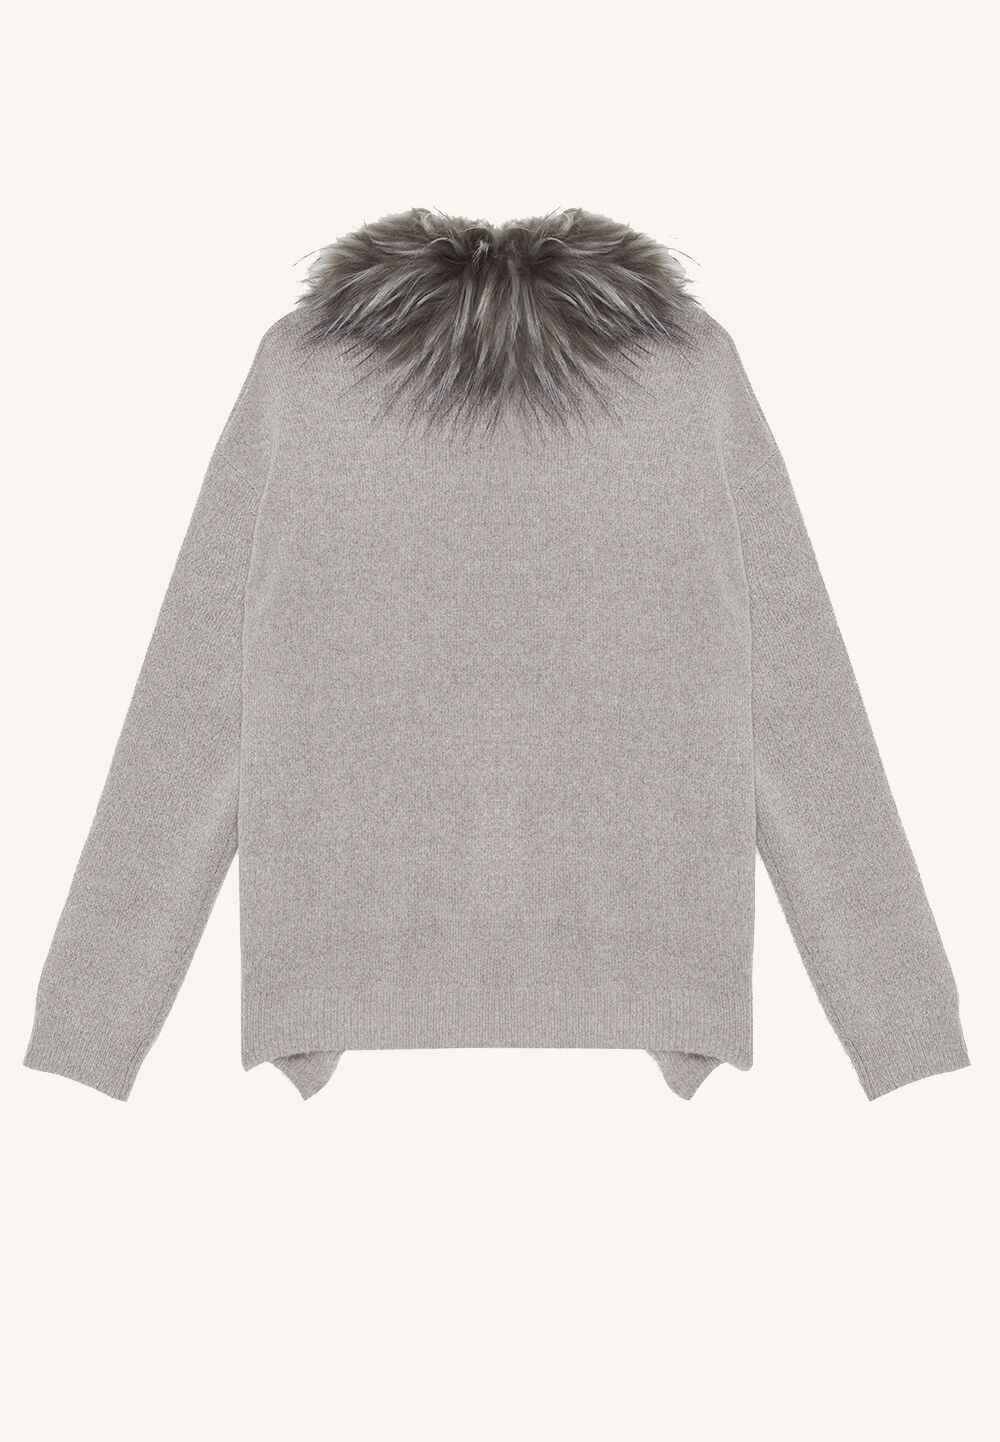 FAUX FUR CARDI in colour FROST GRAY